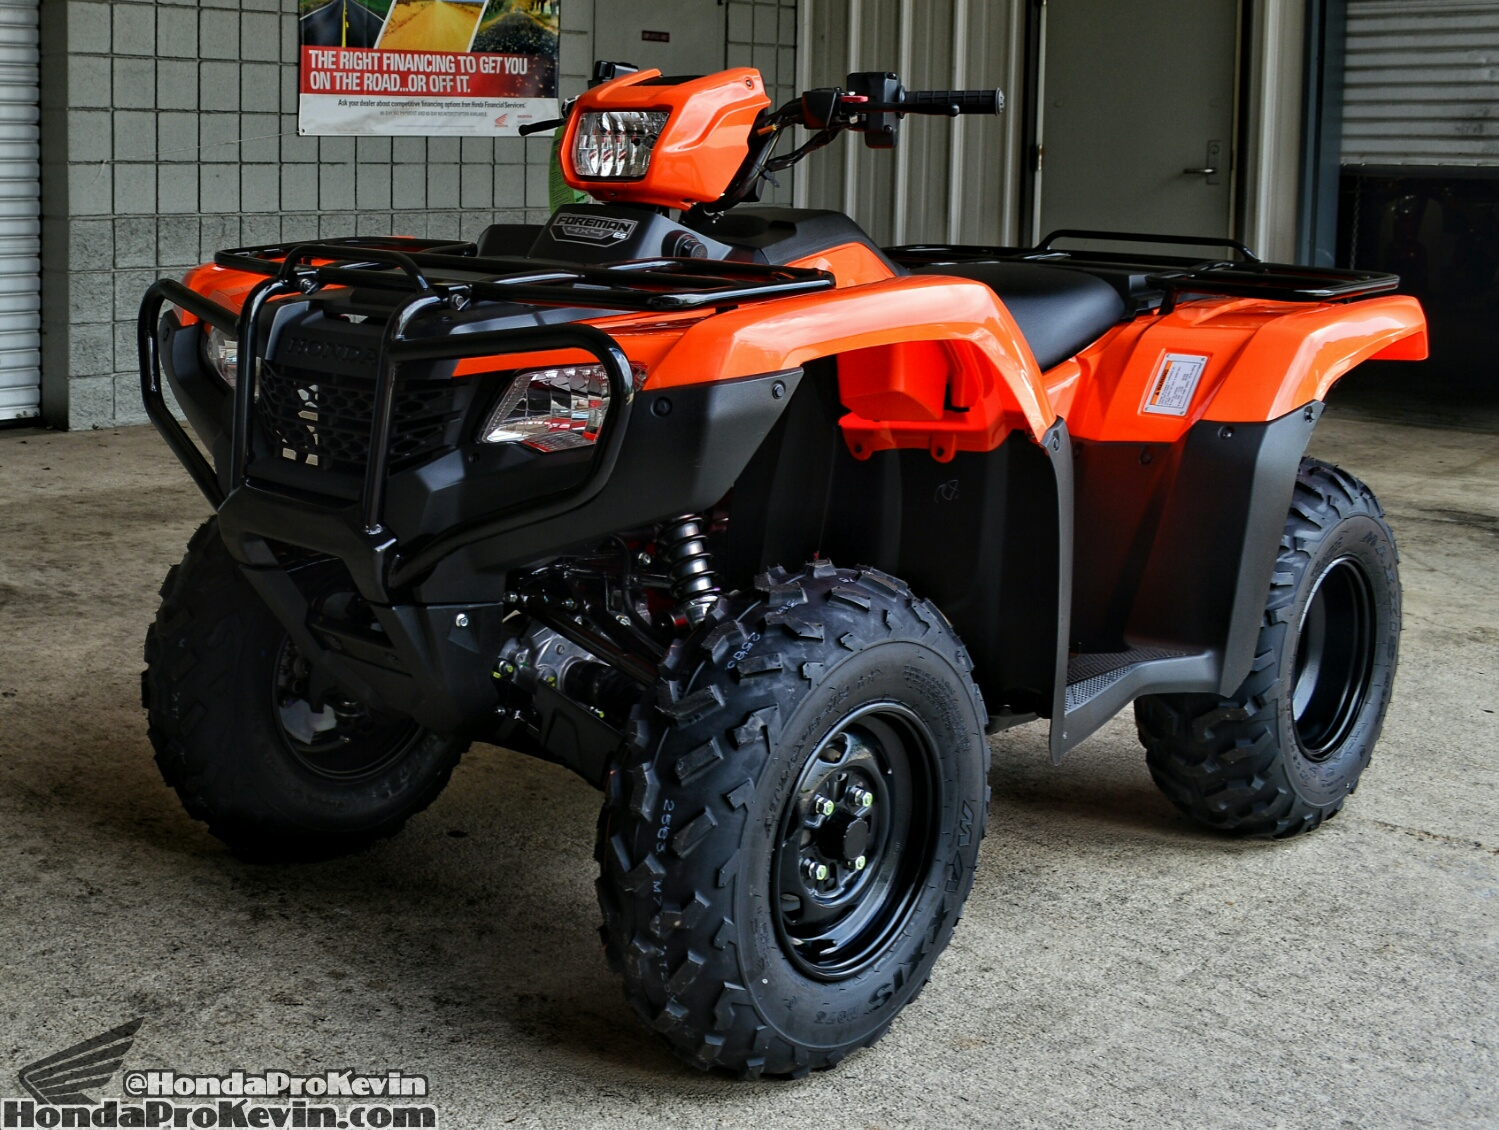 2016-Honda-Foreman-500-ATV-Review-Specs-Horsepower-